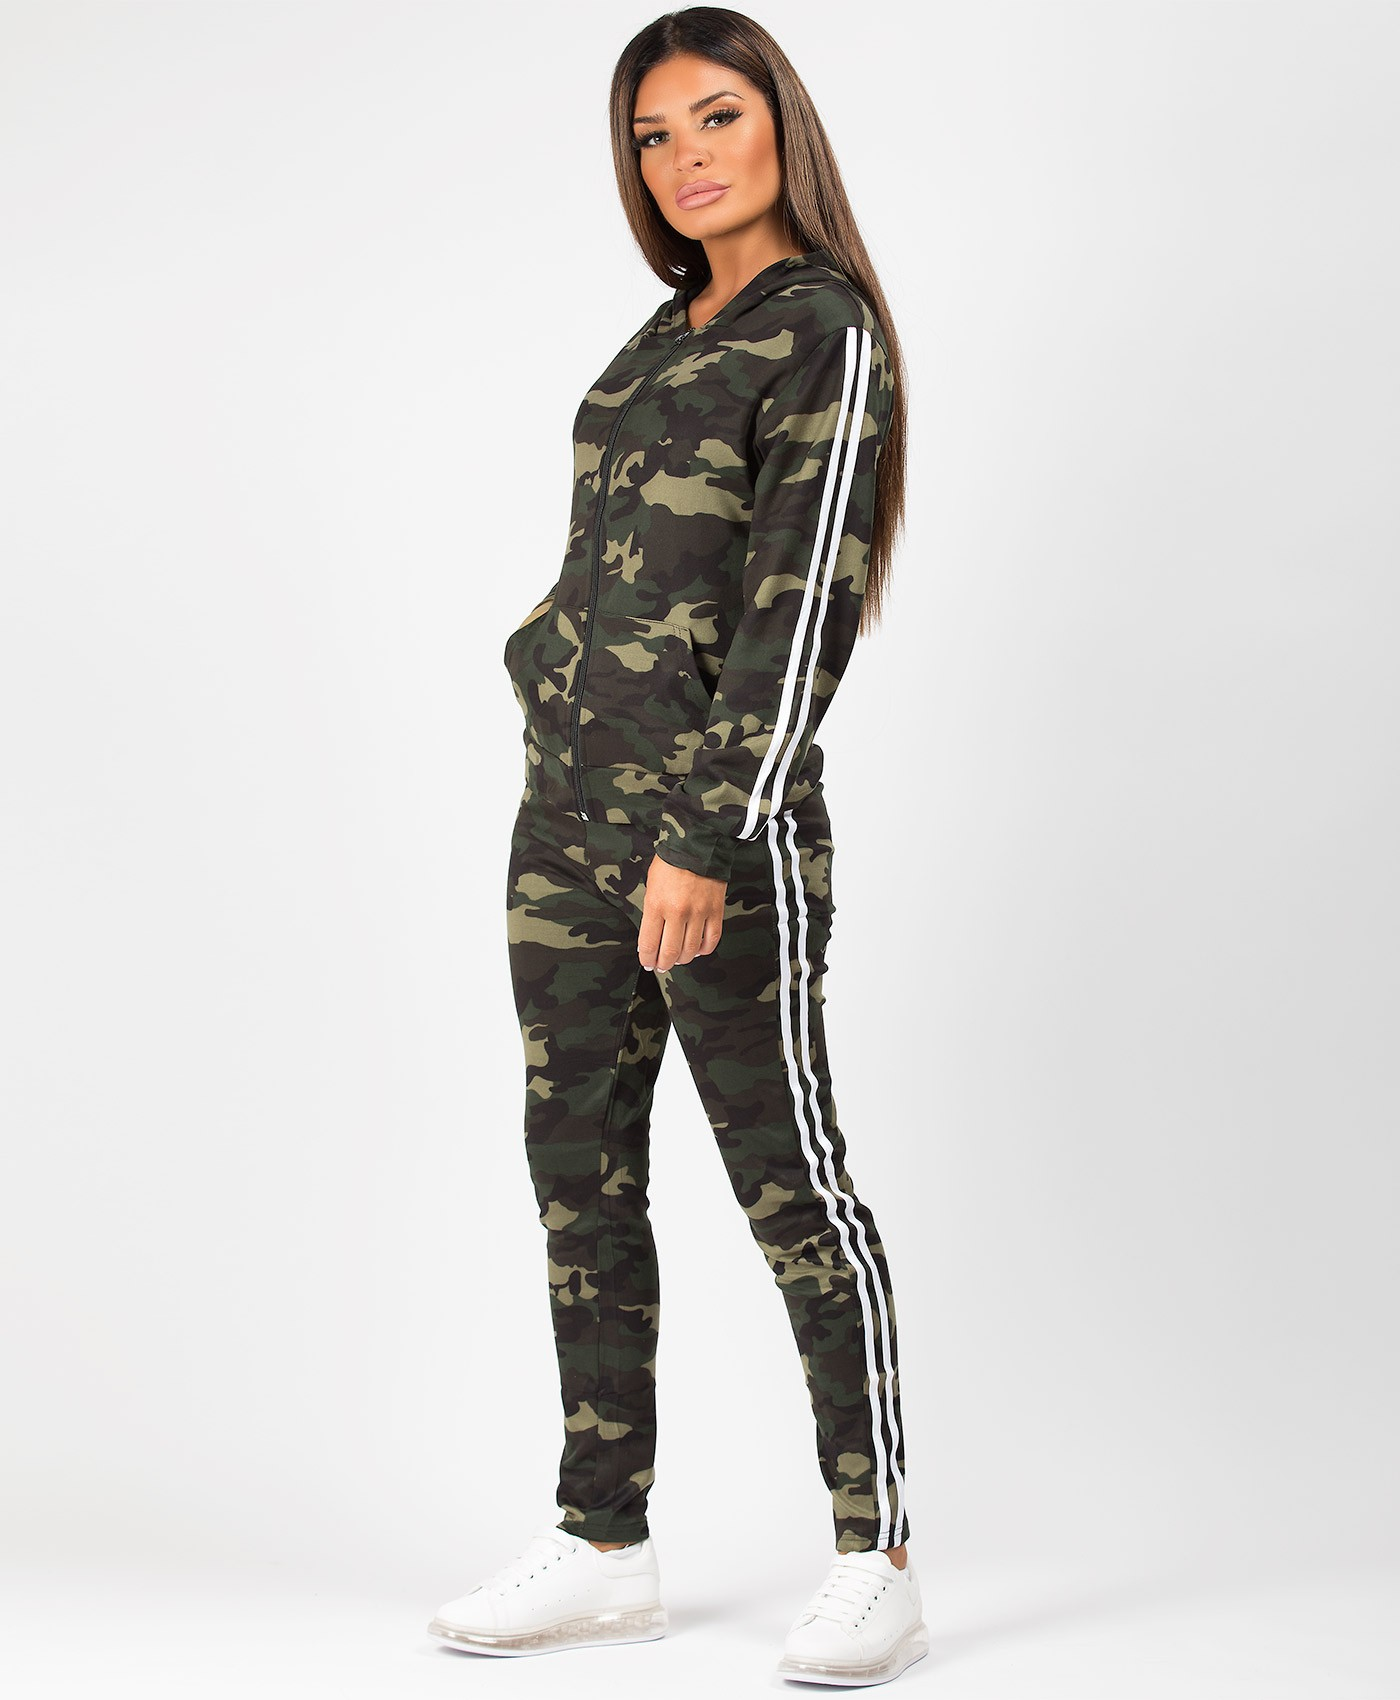 Khaki-Camouflage-White-Side-Stripe-Tracksuit-Loungewear-Set-2